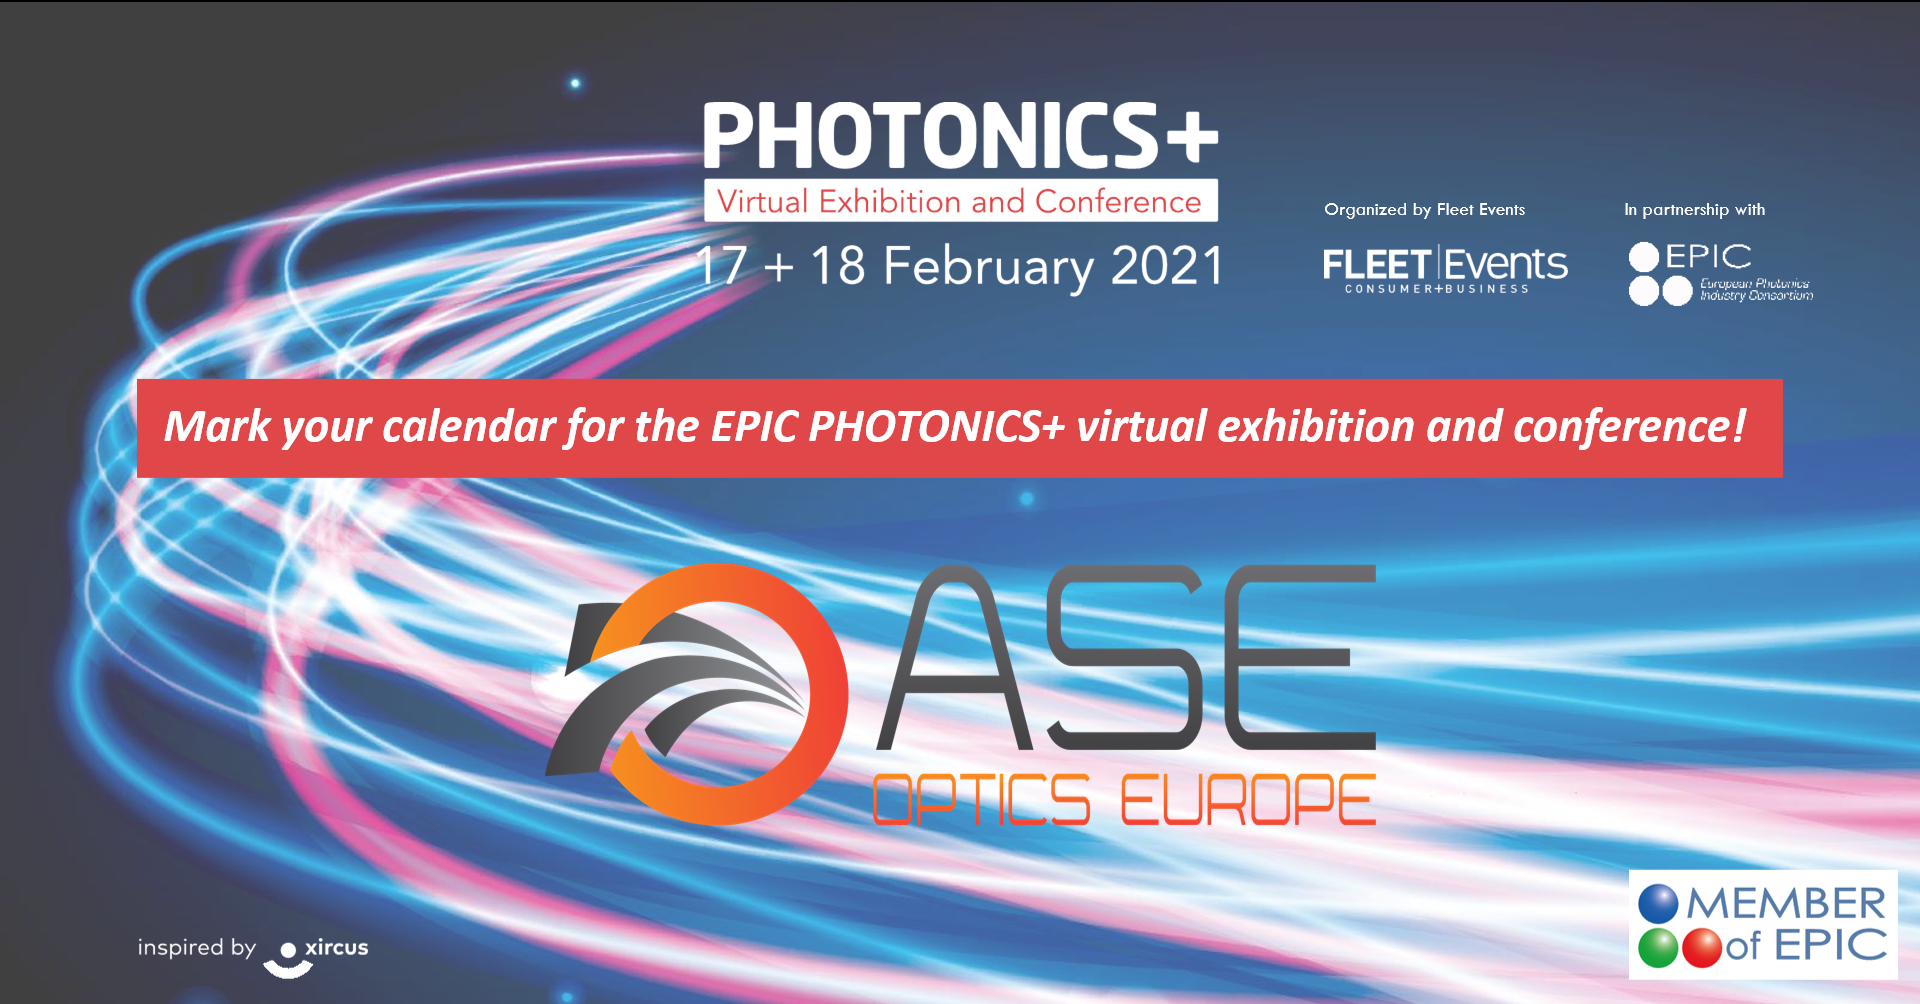 Photonics+ Virtual Exhibition